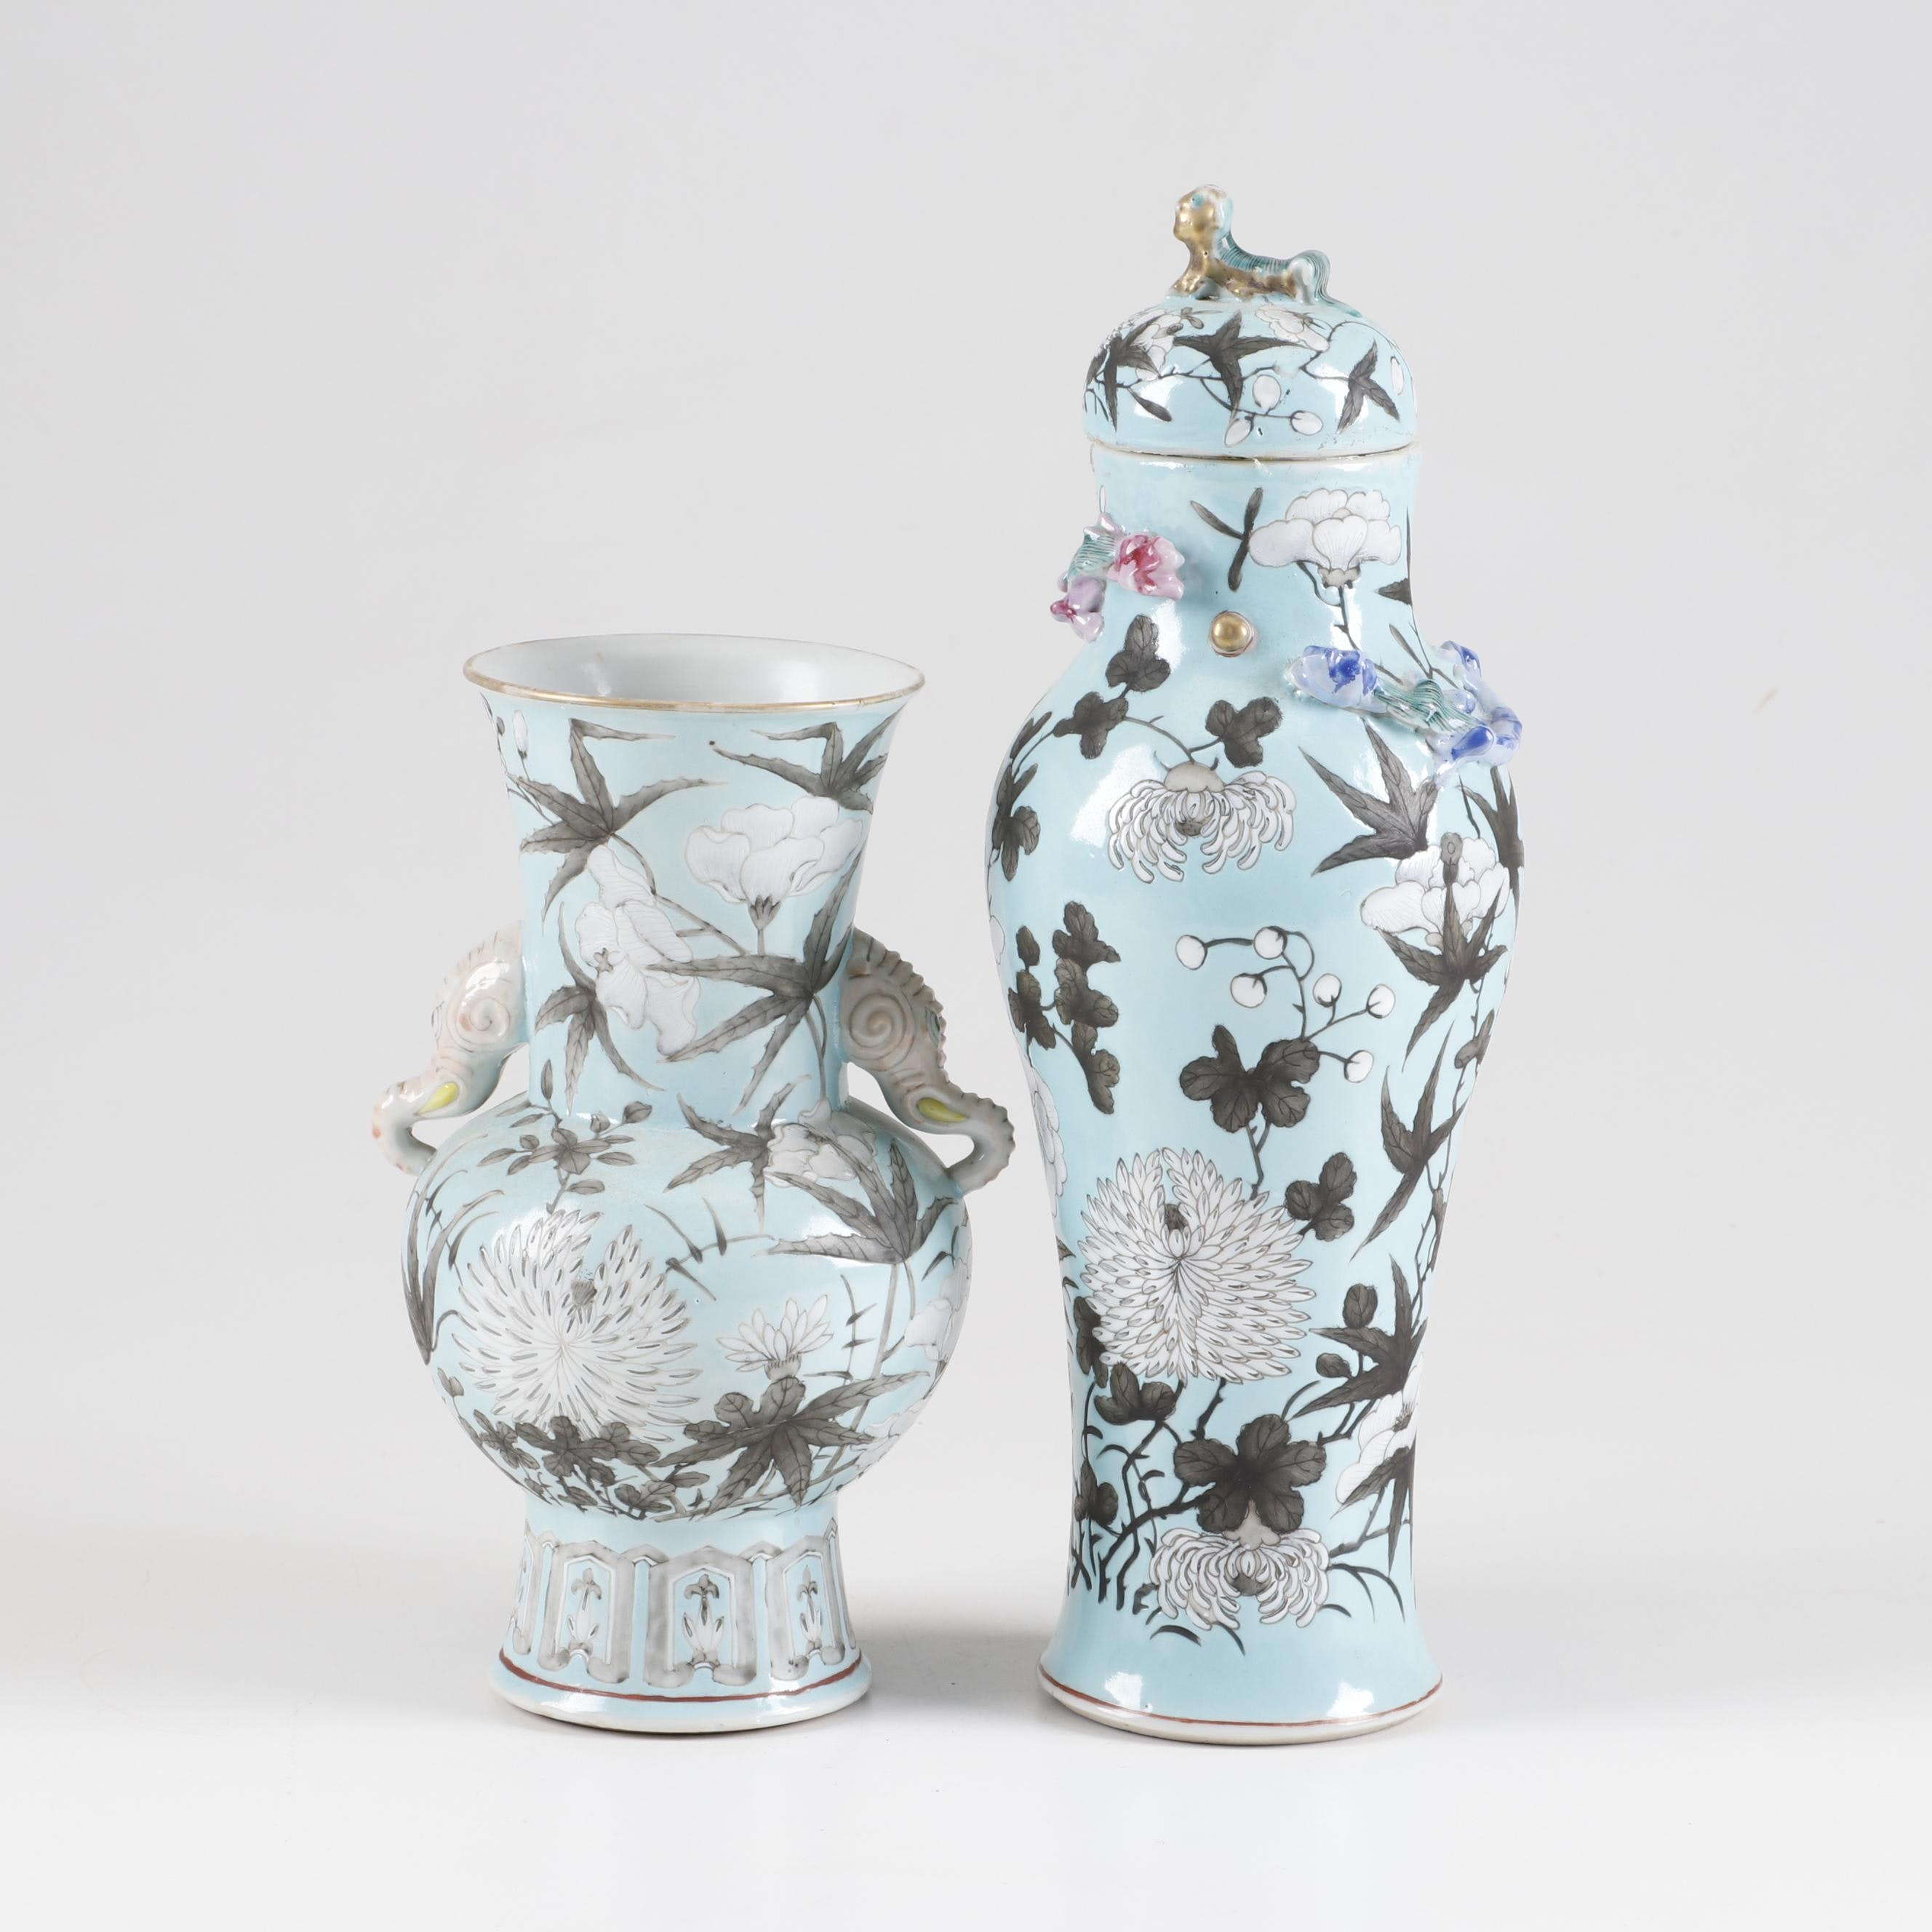 East Asian Hand-Painted Ceramic Vase and Lidded Jar